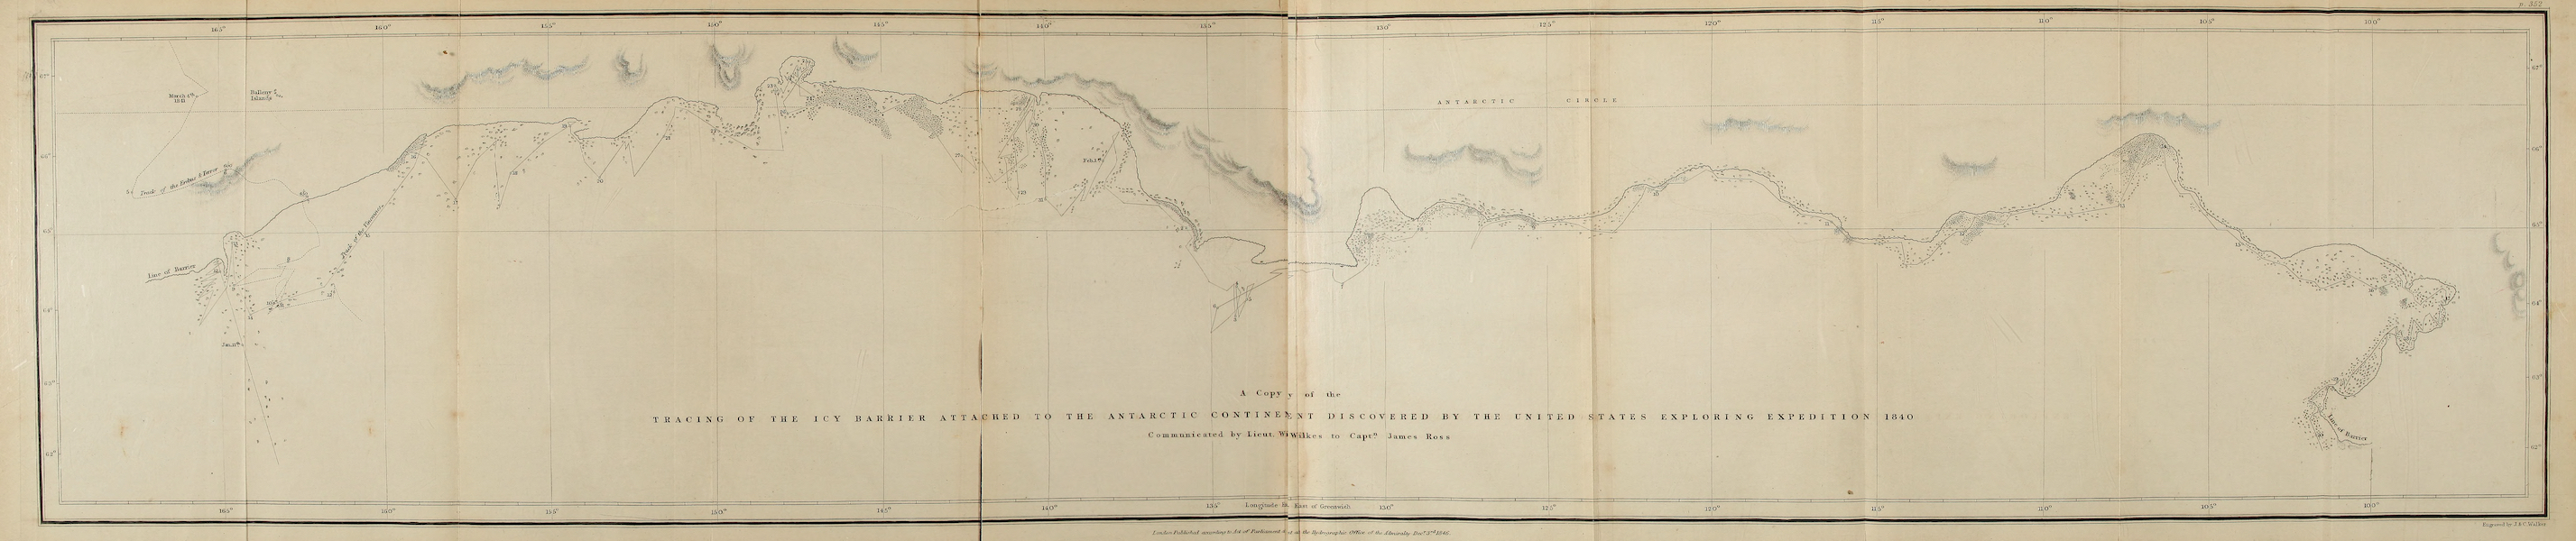 A Voyage of Discovery and Research in the Southern and Antarctic Regions Vol. 1 - Wilkes's Discoveries (Plan) (1847)